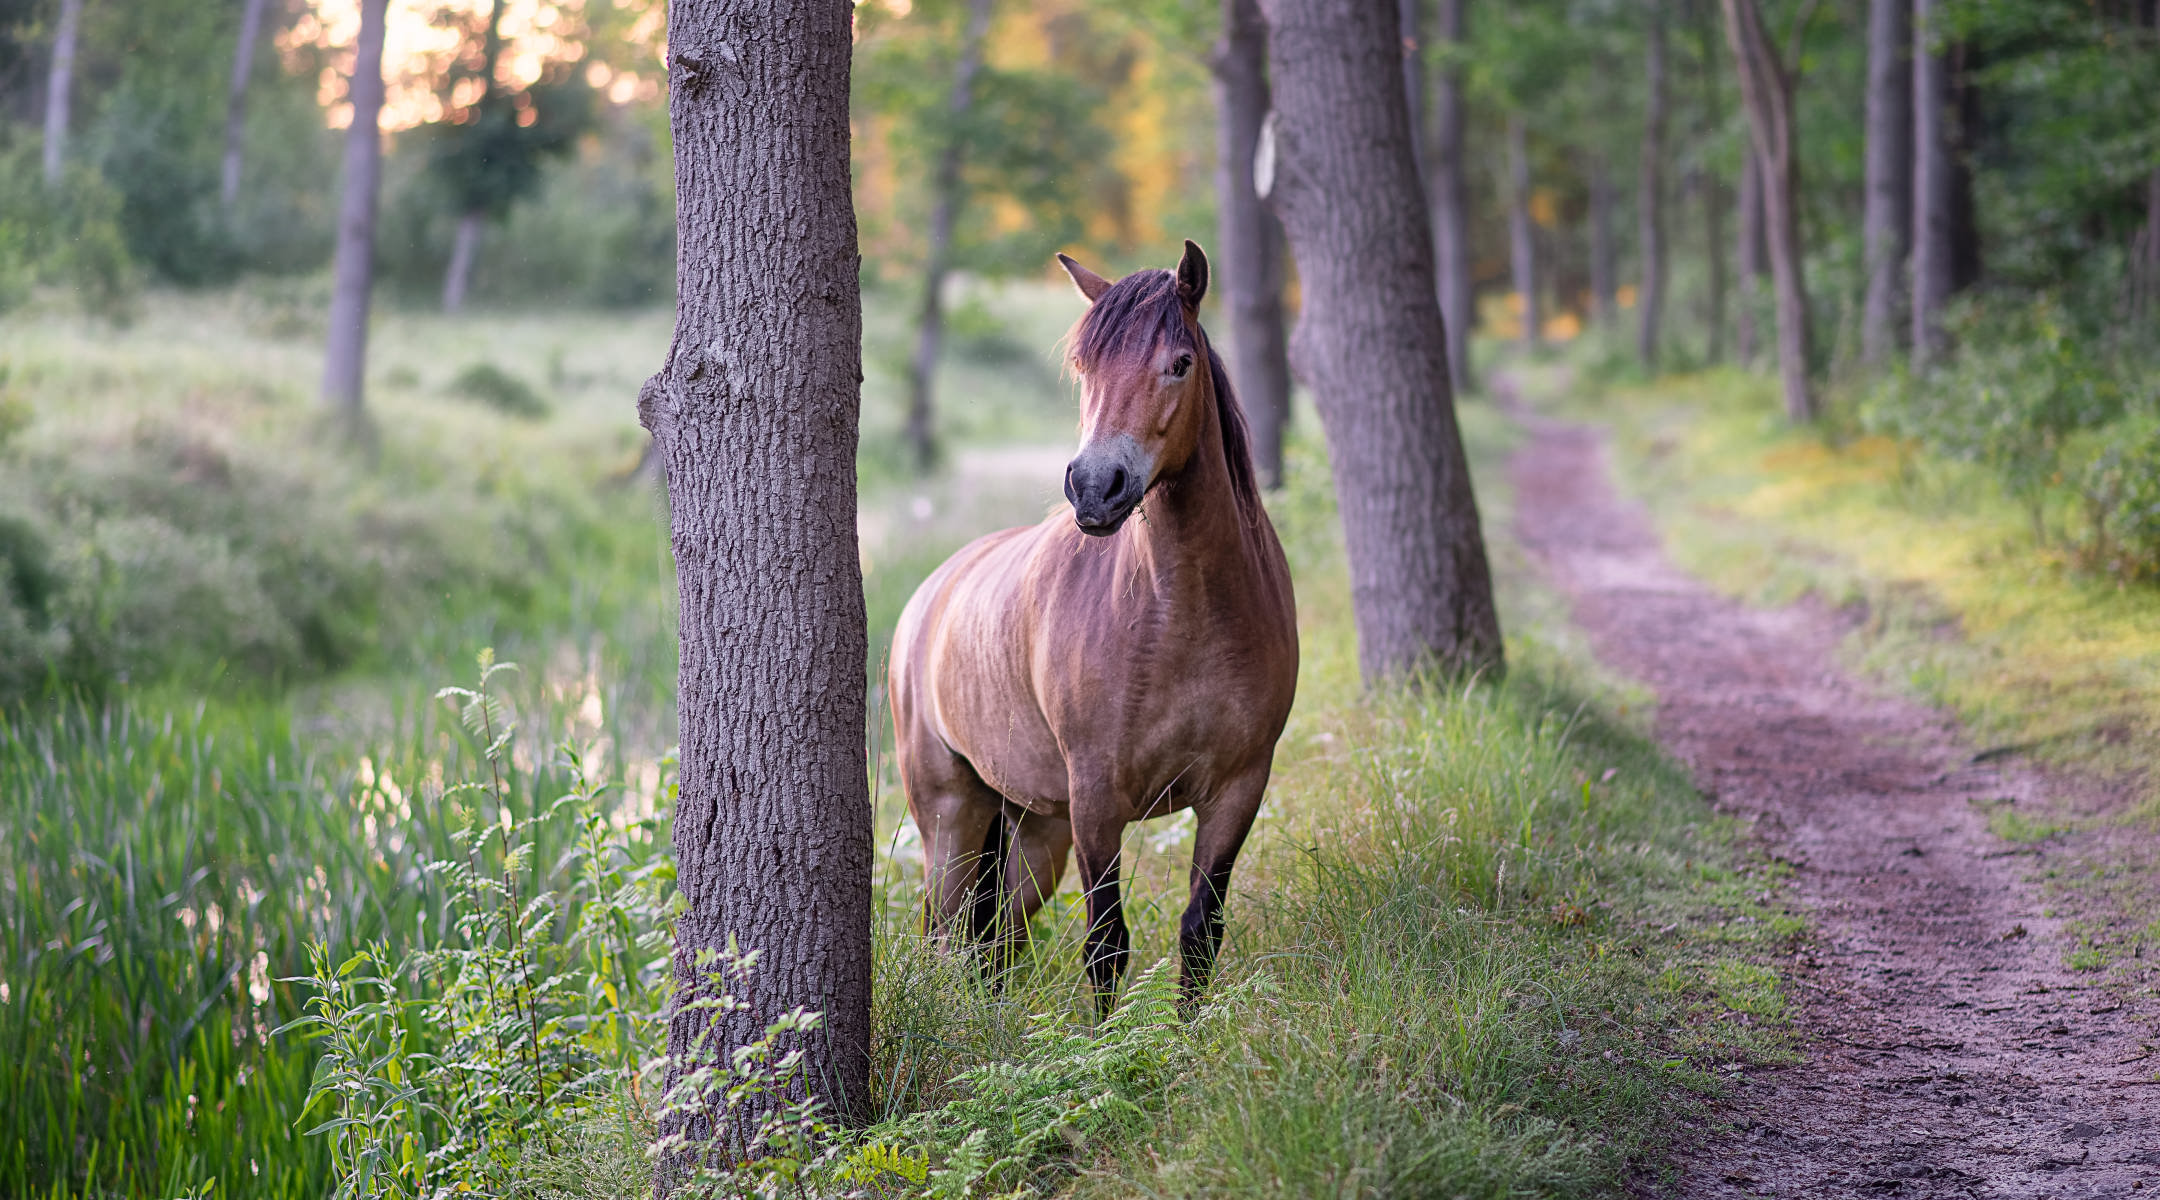 horse climbing from forest ditch onto path